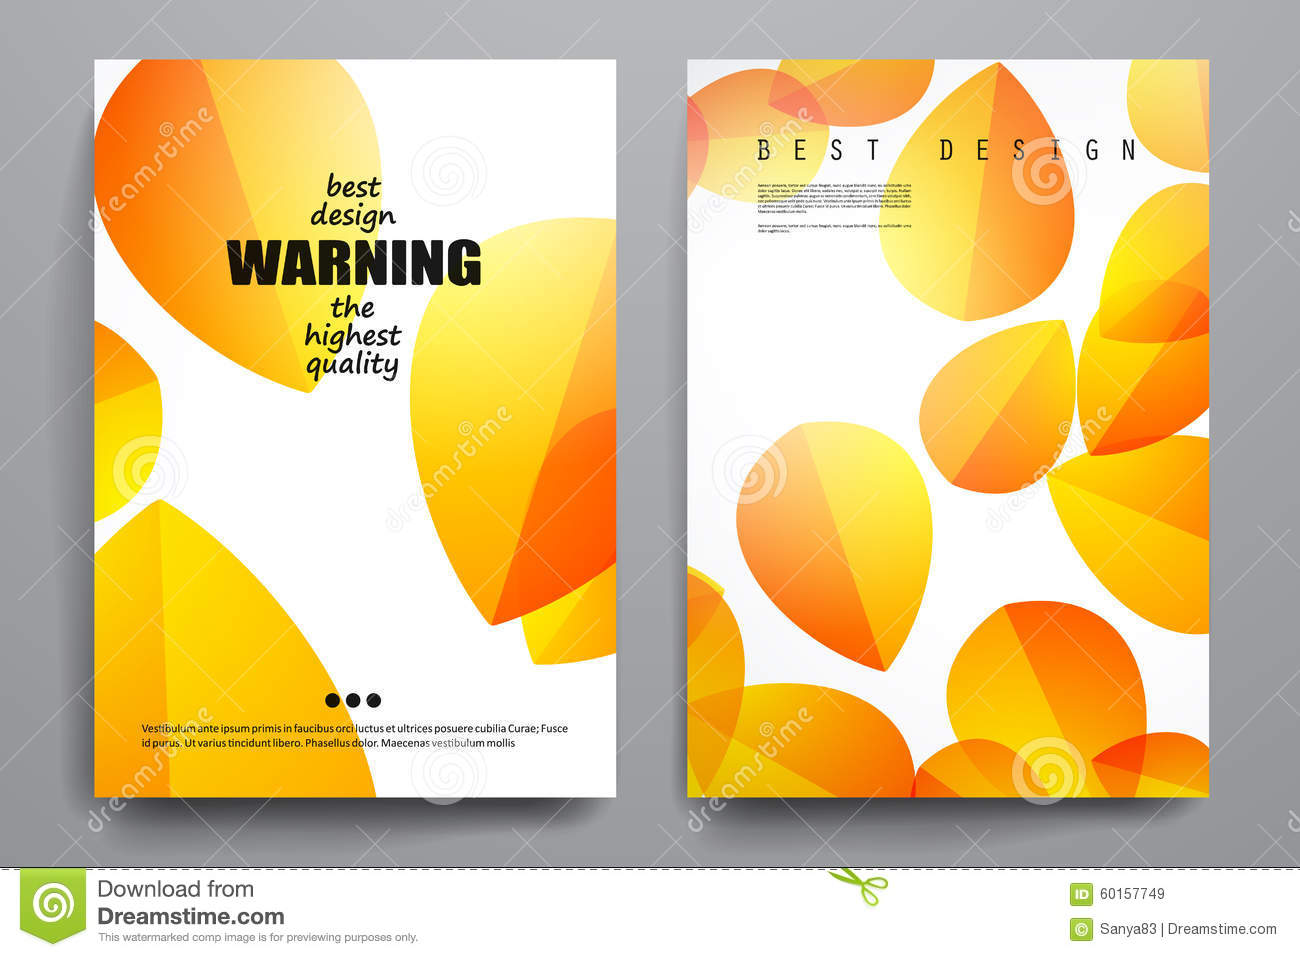 Poster design online free download - Set Of Brochure Poster Design Templates In Autumn Stock Vector